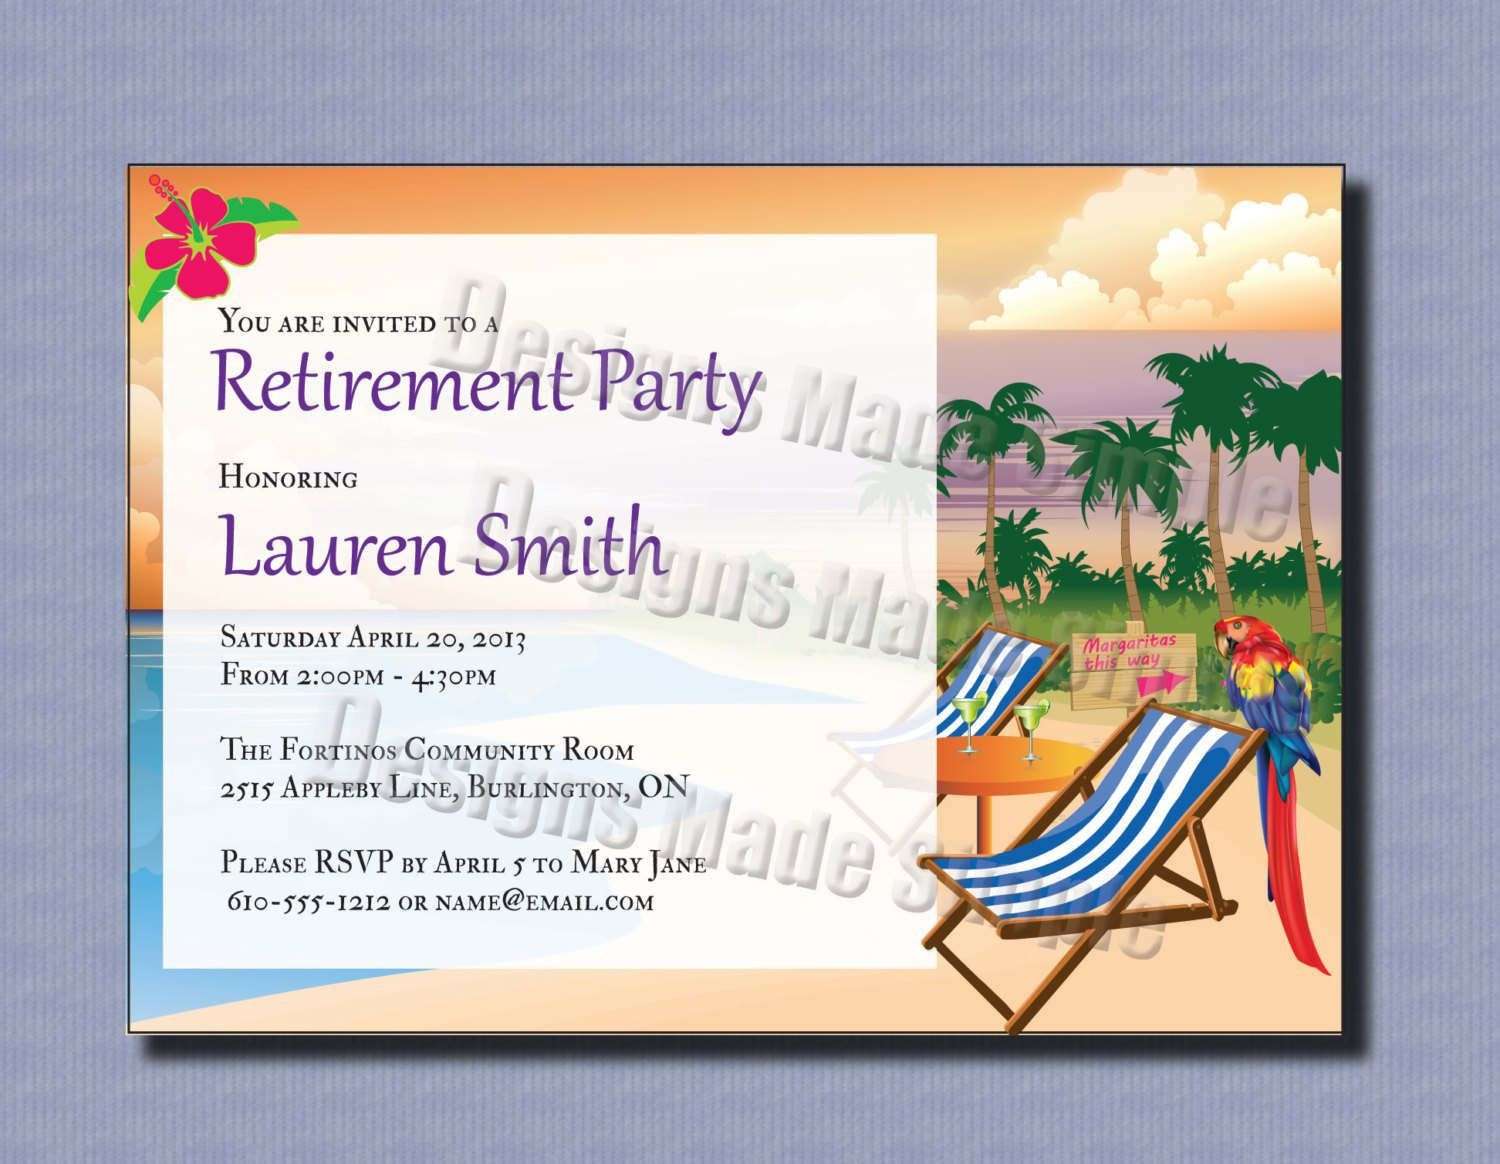 000 Awful Retirement Party Invite Template Word Free Photo Full